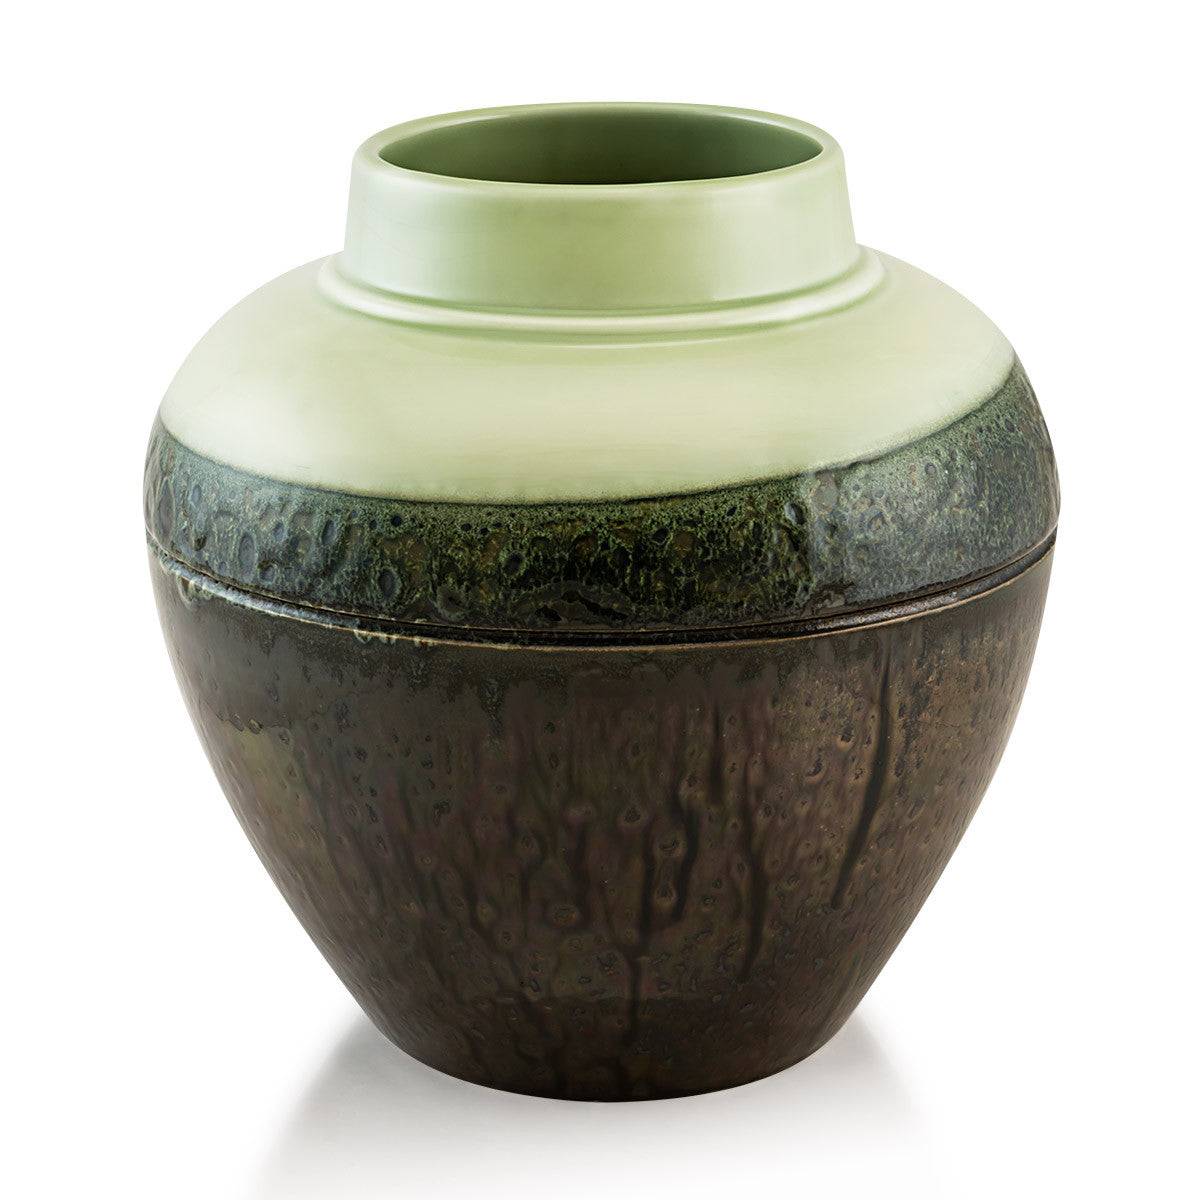 Round vases Pottery supplies Celadon color